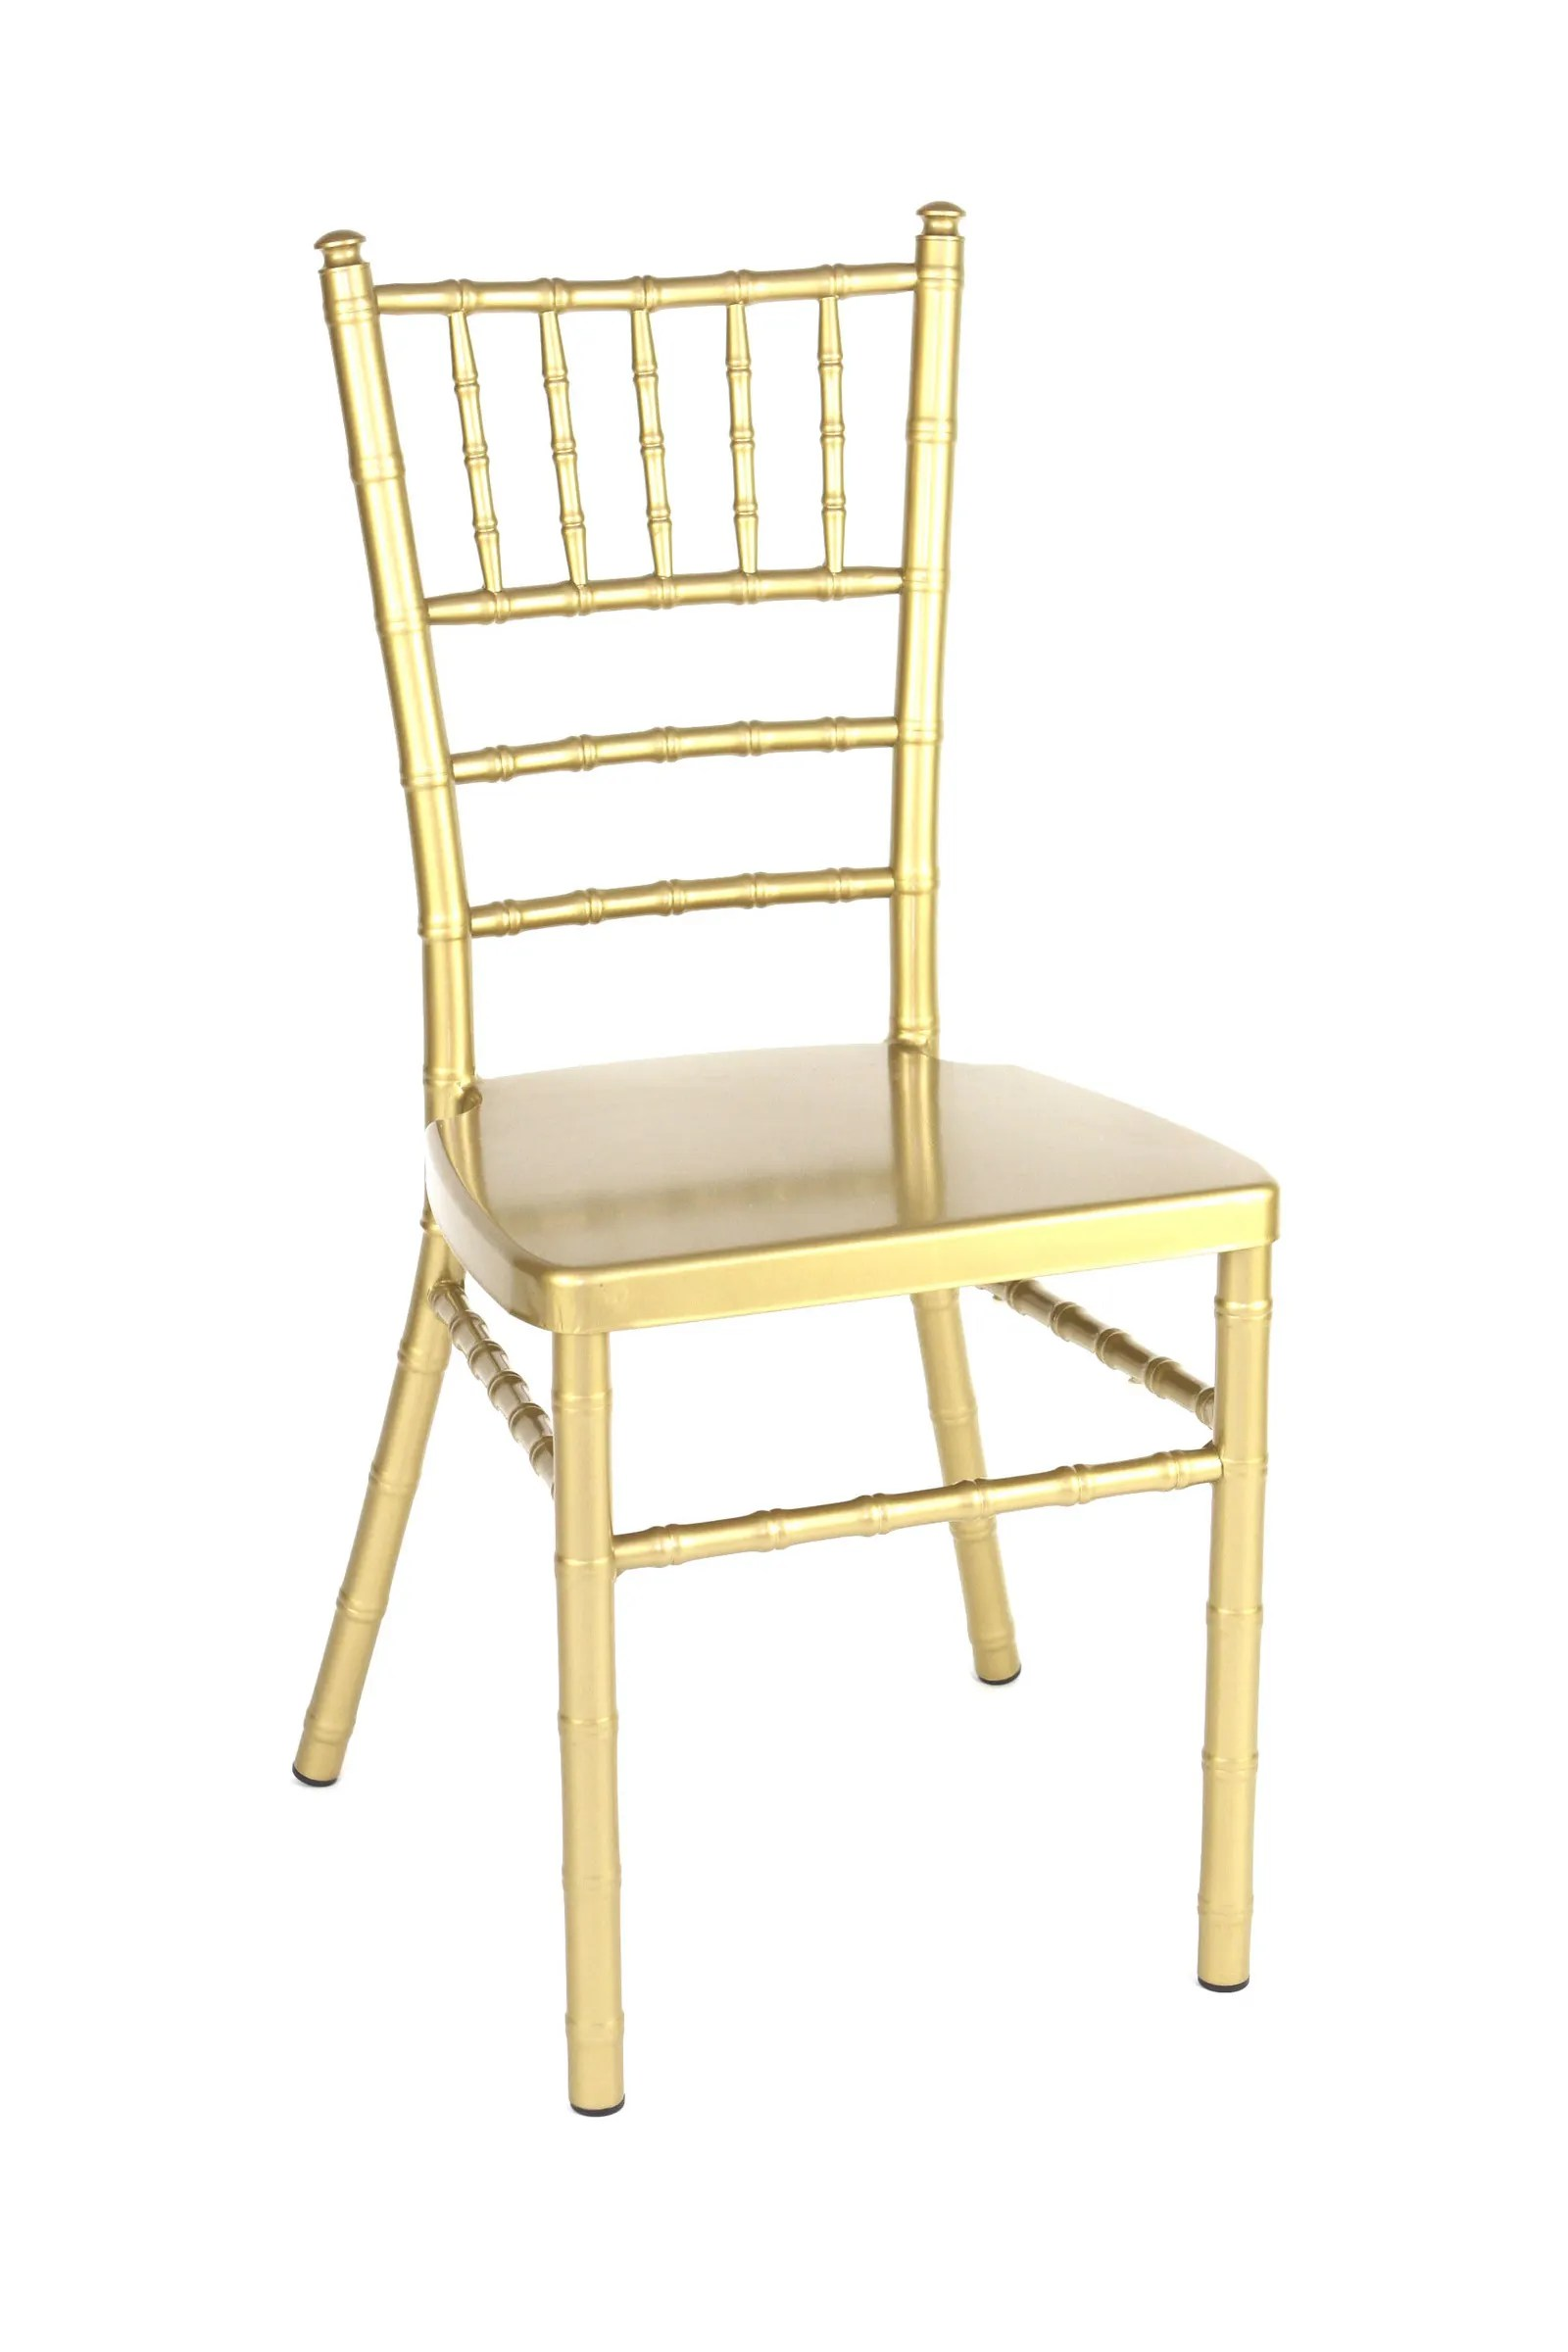 Chivary Chairs Chiavari Chairs Wood Aluminum Or Resin Eventstable